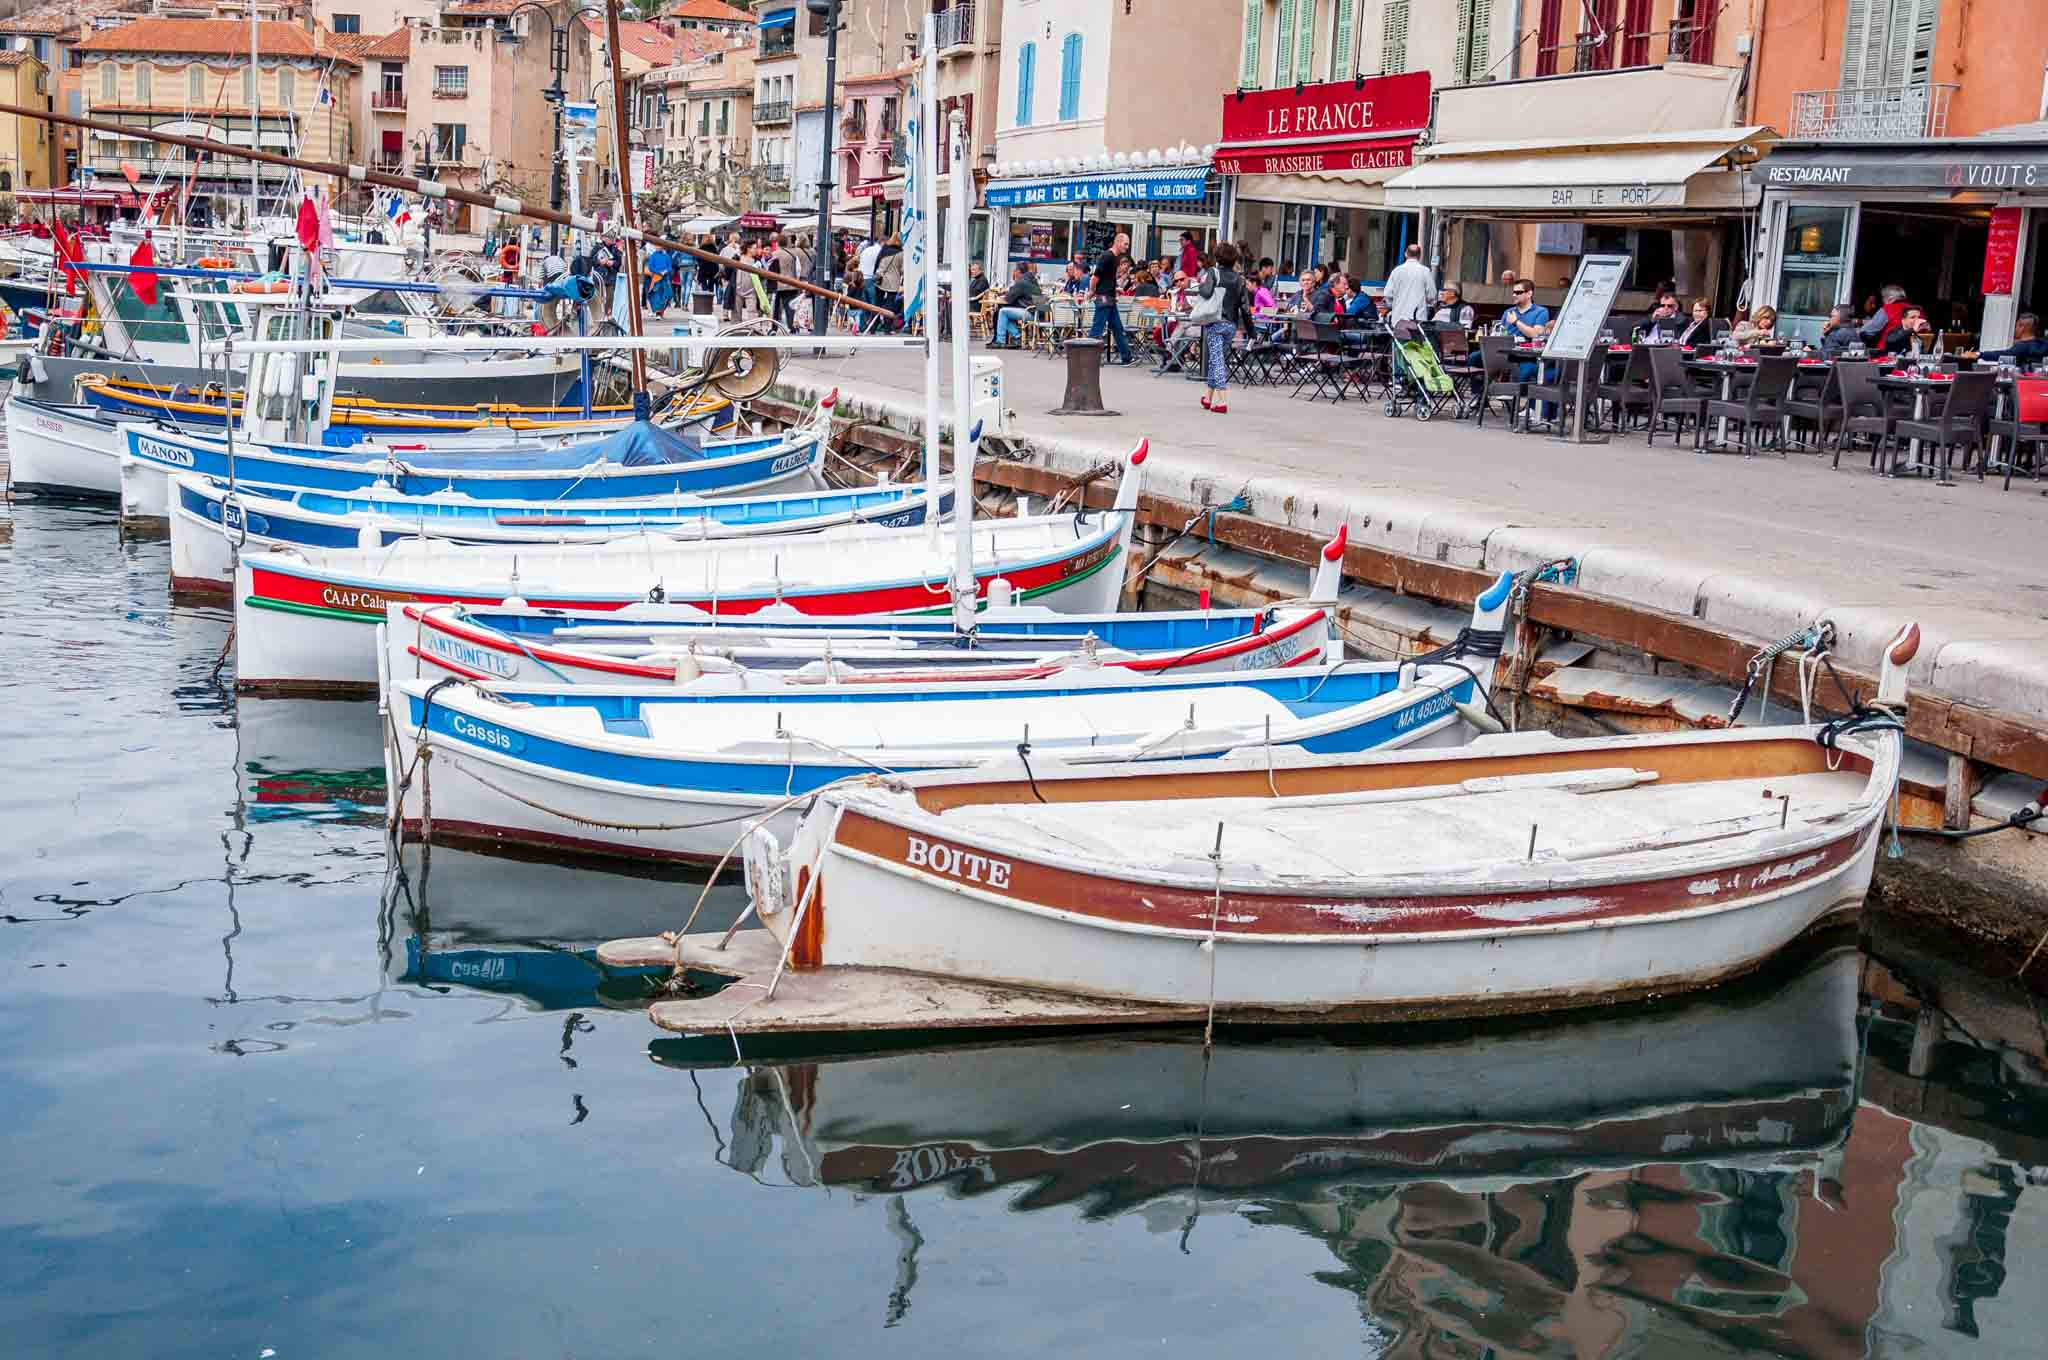 Boats and harborside restaurants in Cassis, France -- one of our favorite stops on our 10-day South of France itinerary